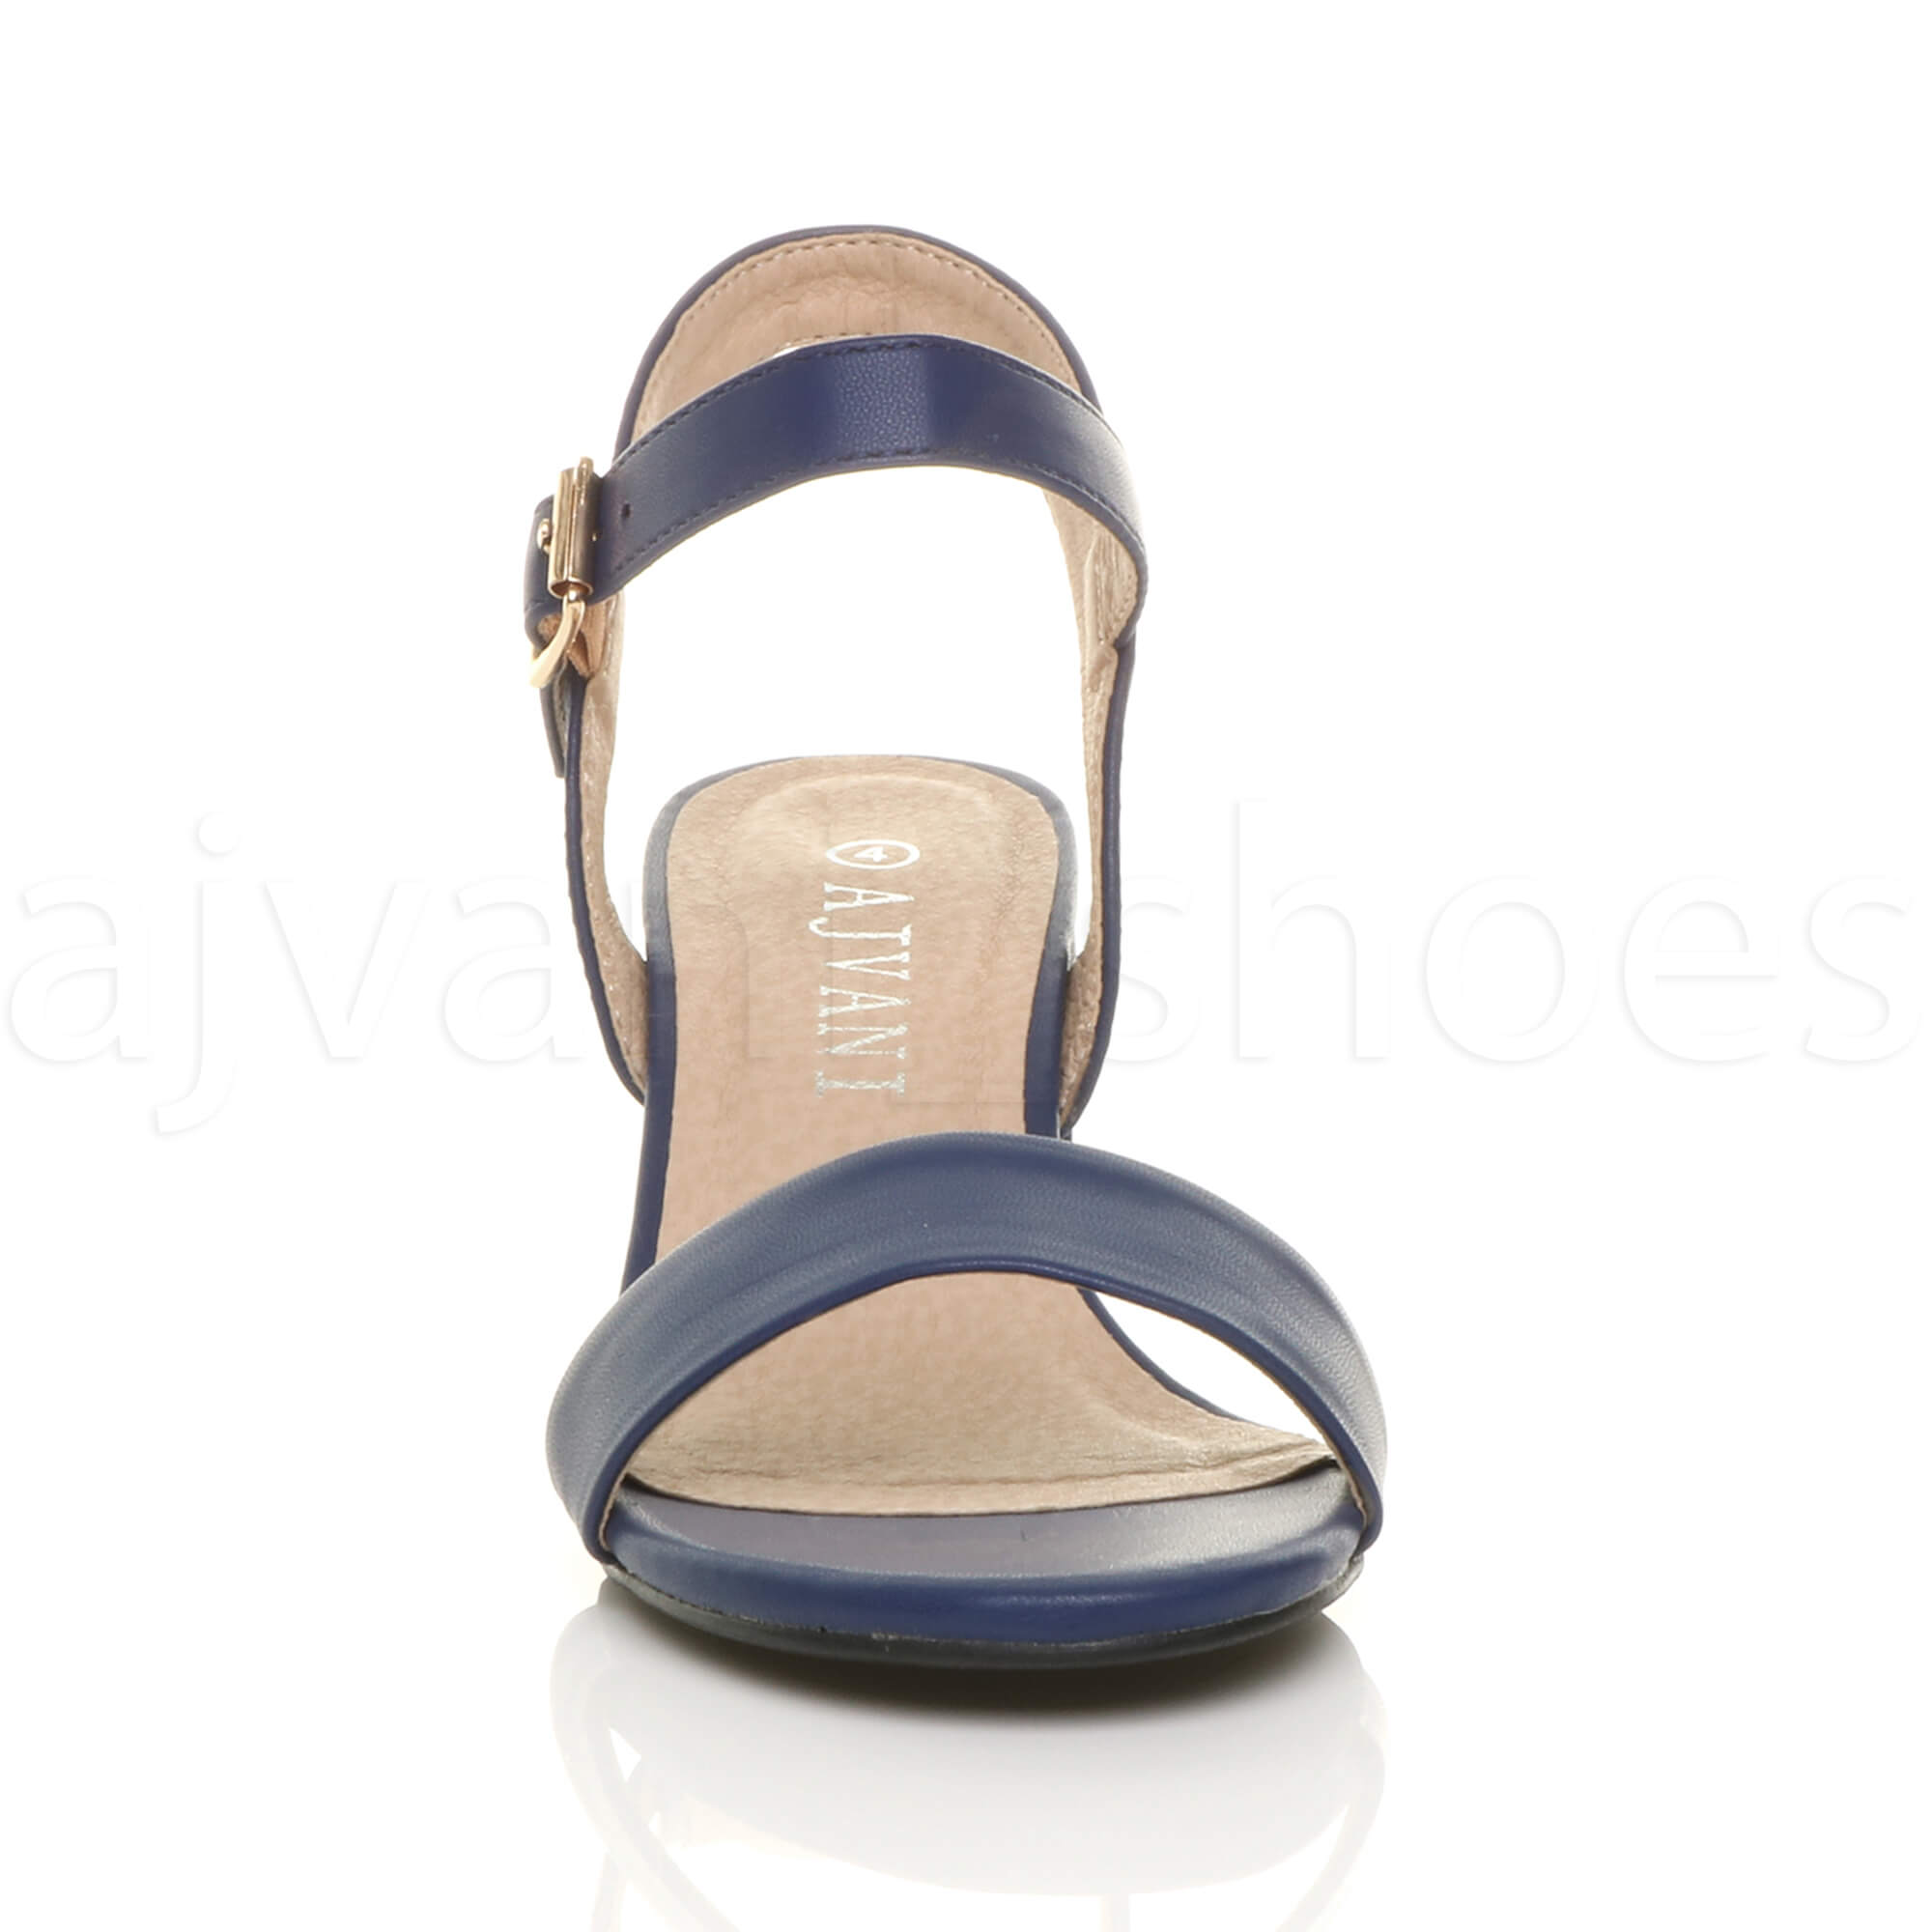 WOMENS-LADIES-MID-LOW-BLOCK-HEEL-PEEP-TOE-ANKLE-STRAP-STRAPPY-PARTY-SANDALS-SIZE thumbnail 87